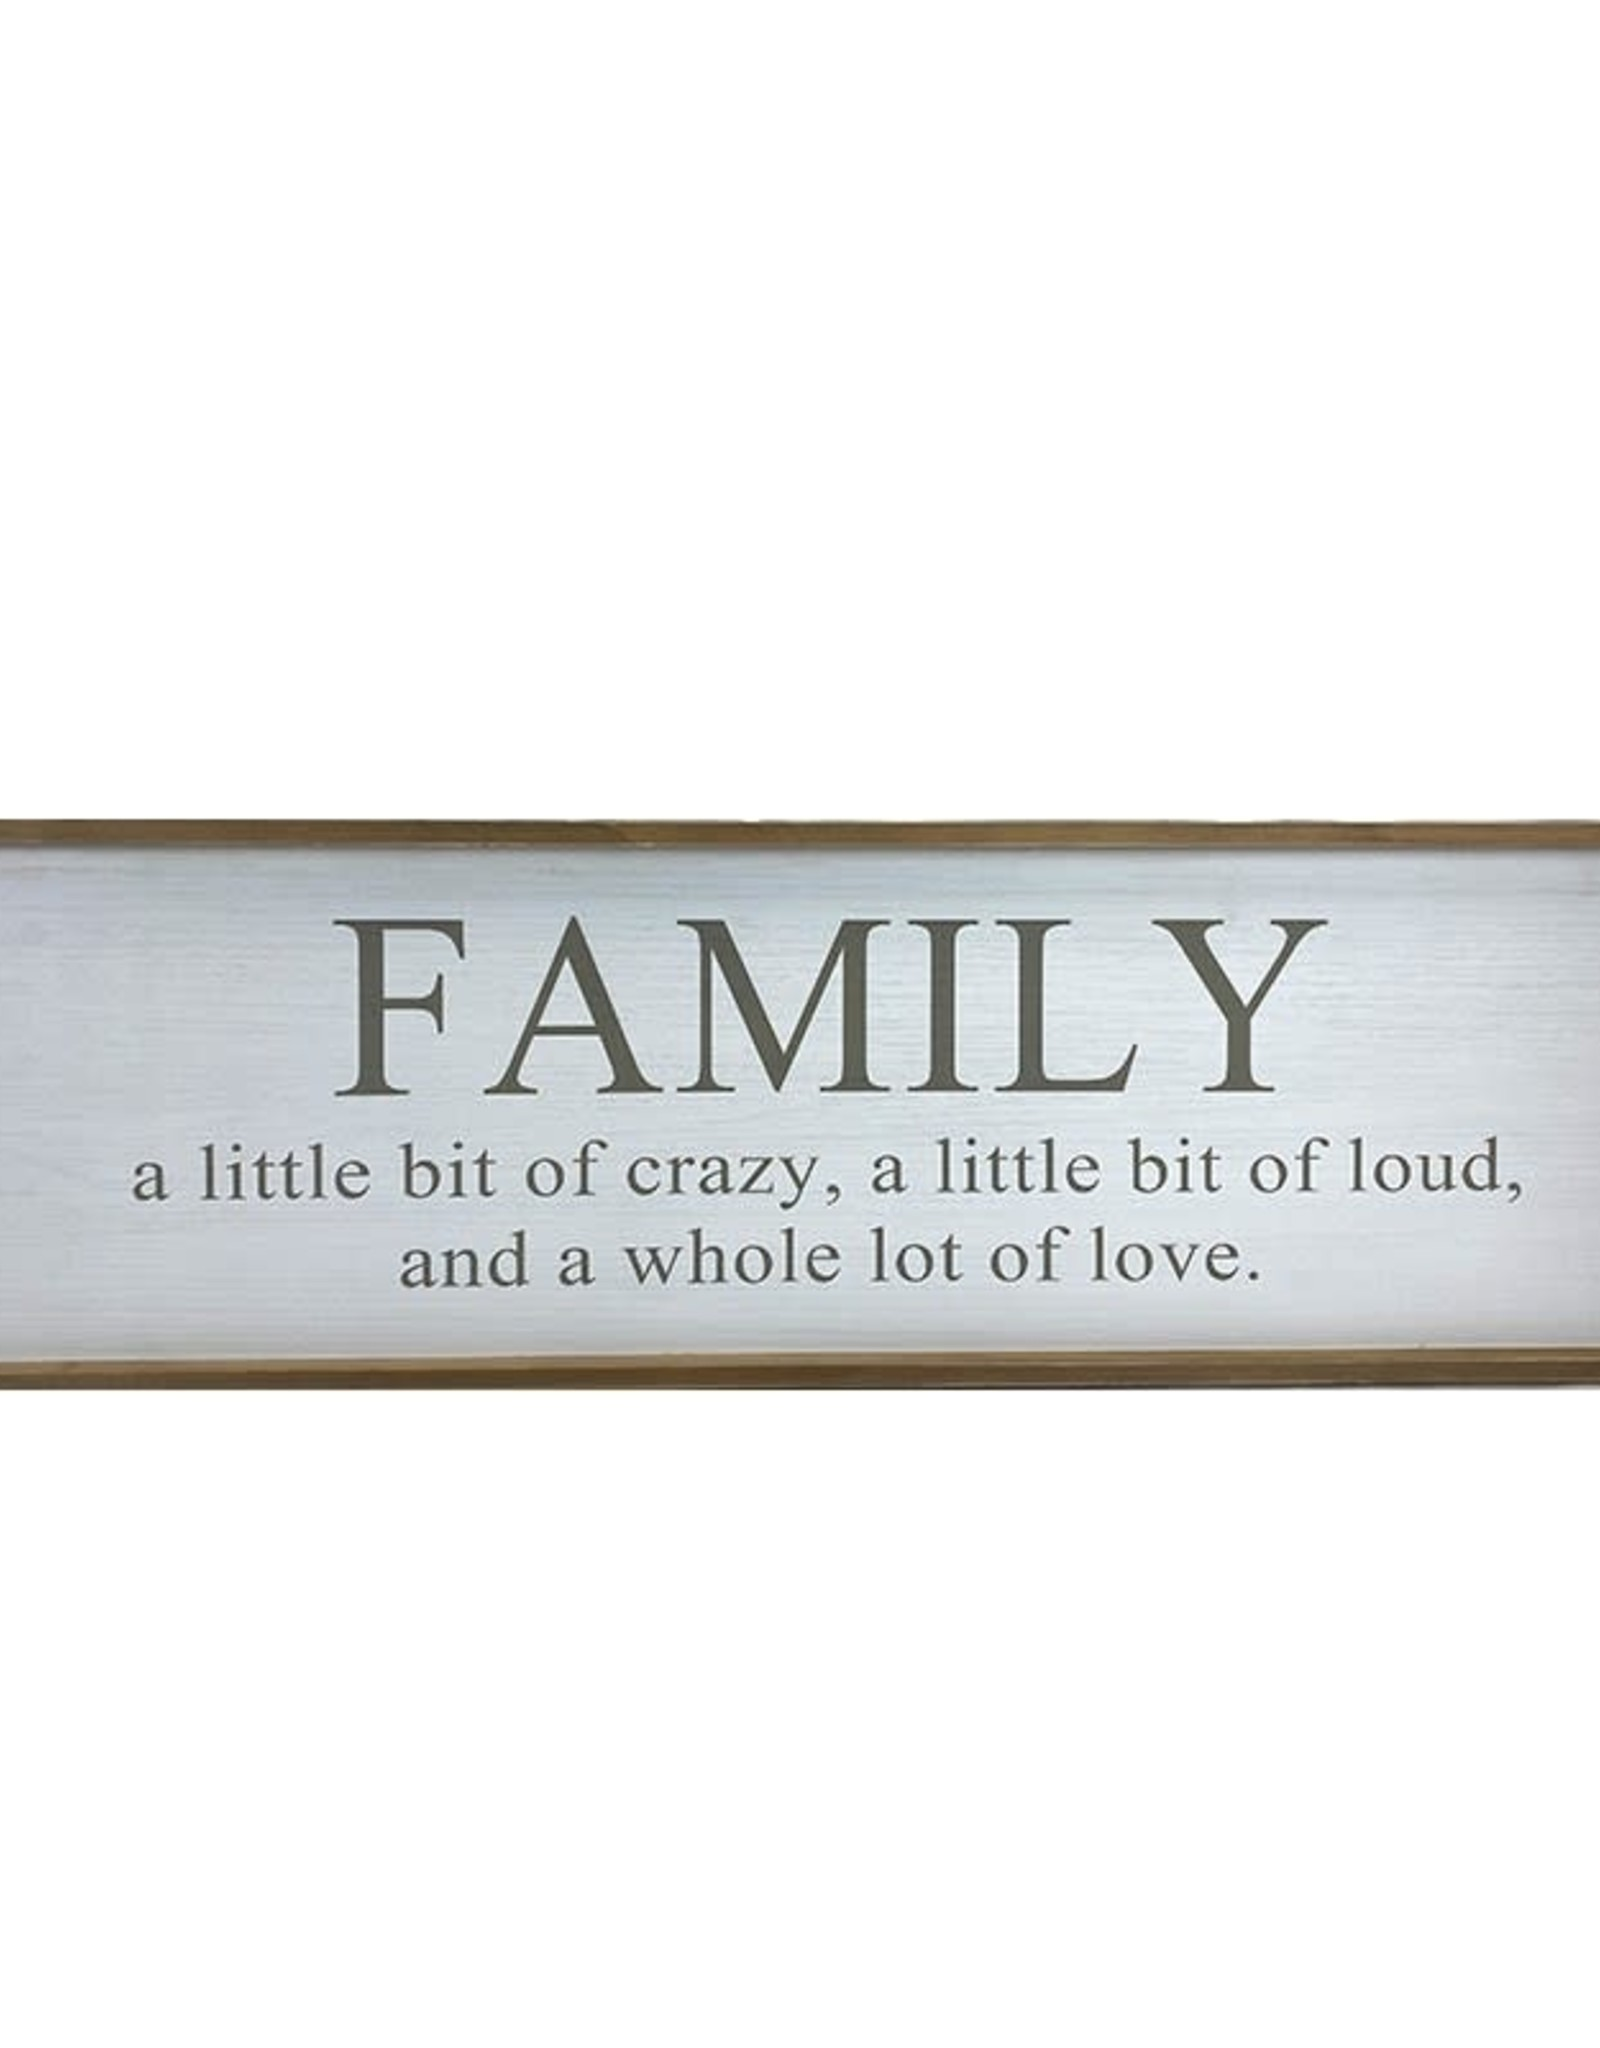 Koppers Family Sign Crazy, Love 120 x 35 x 2.8 cm